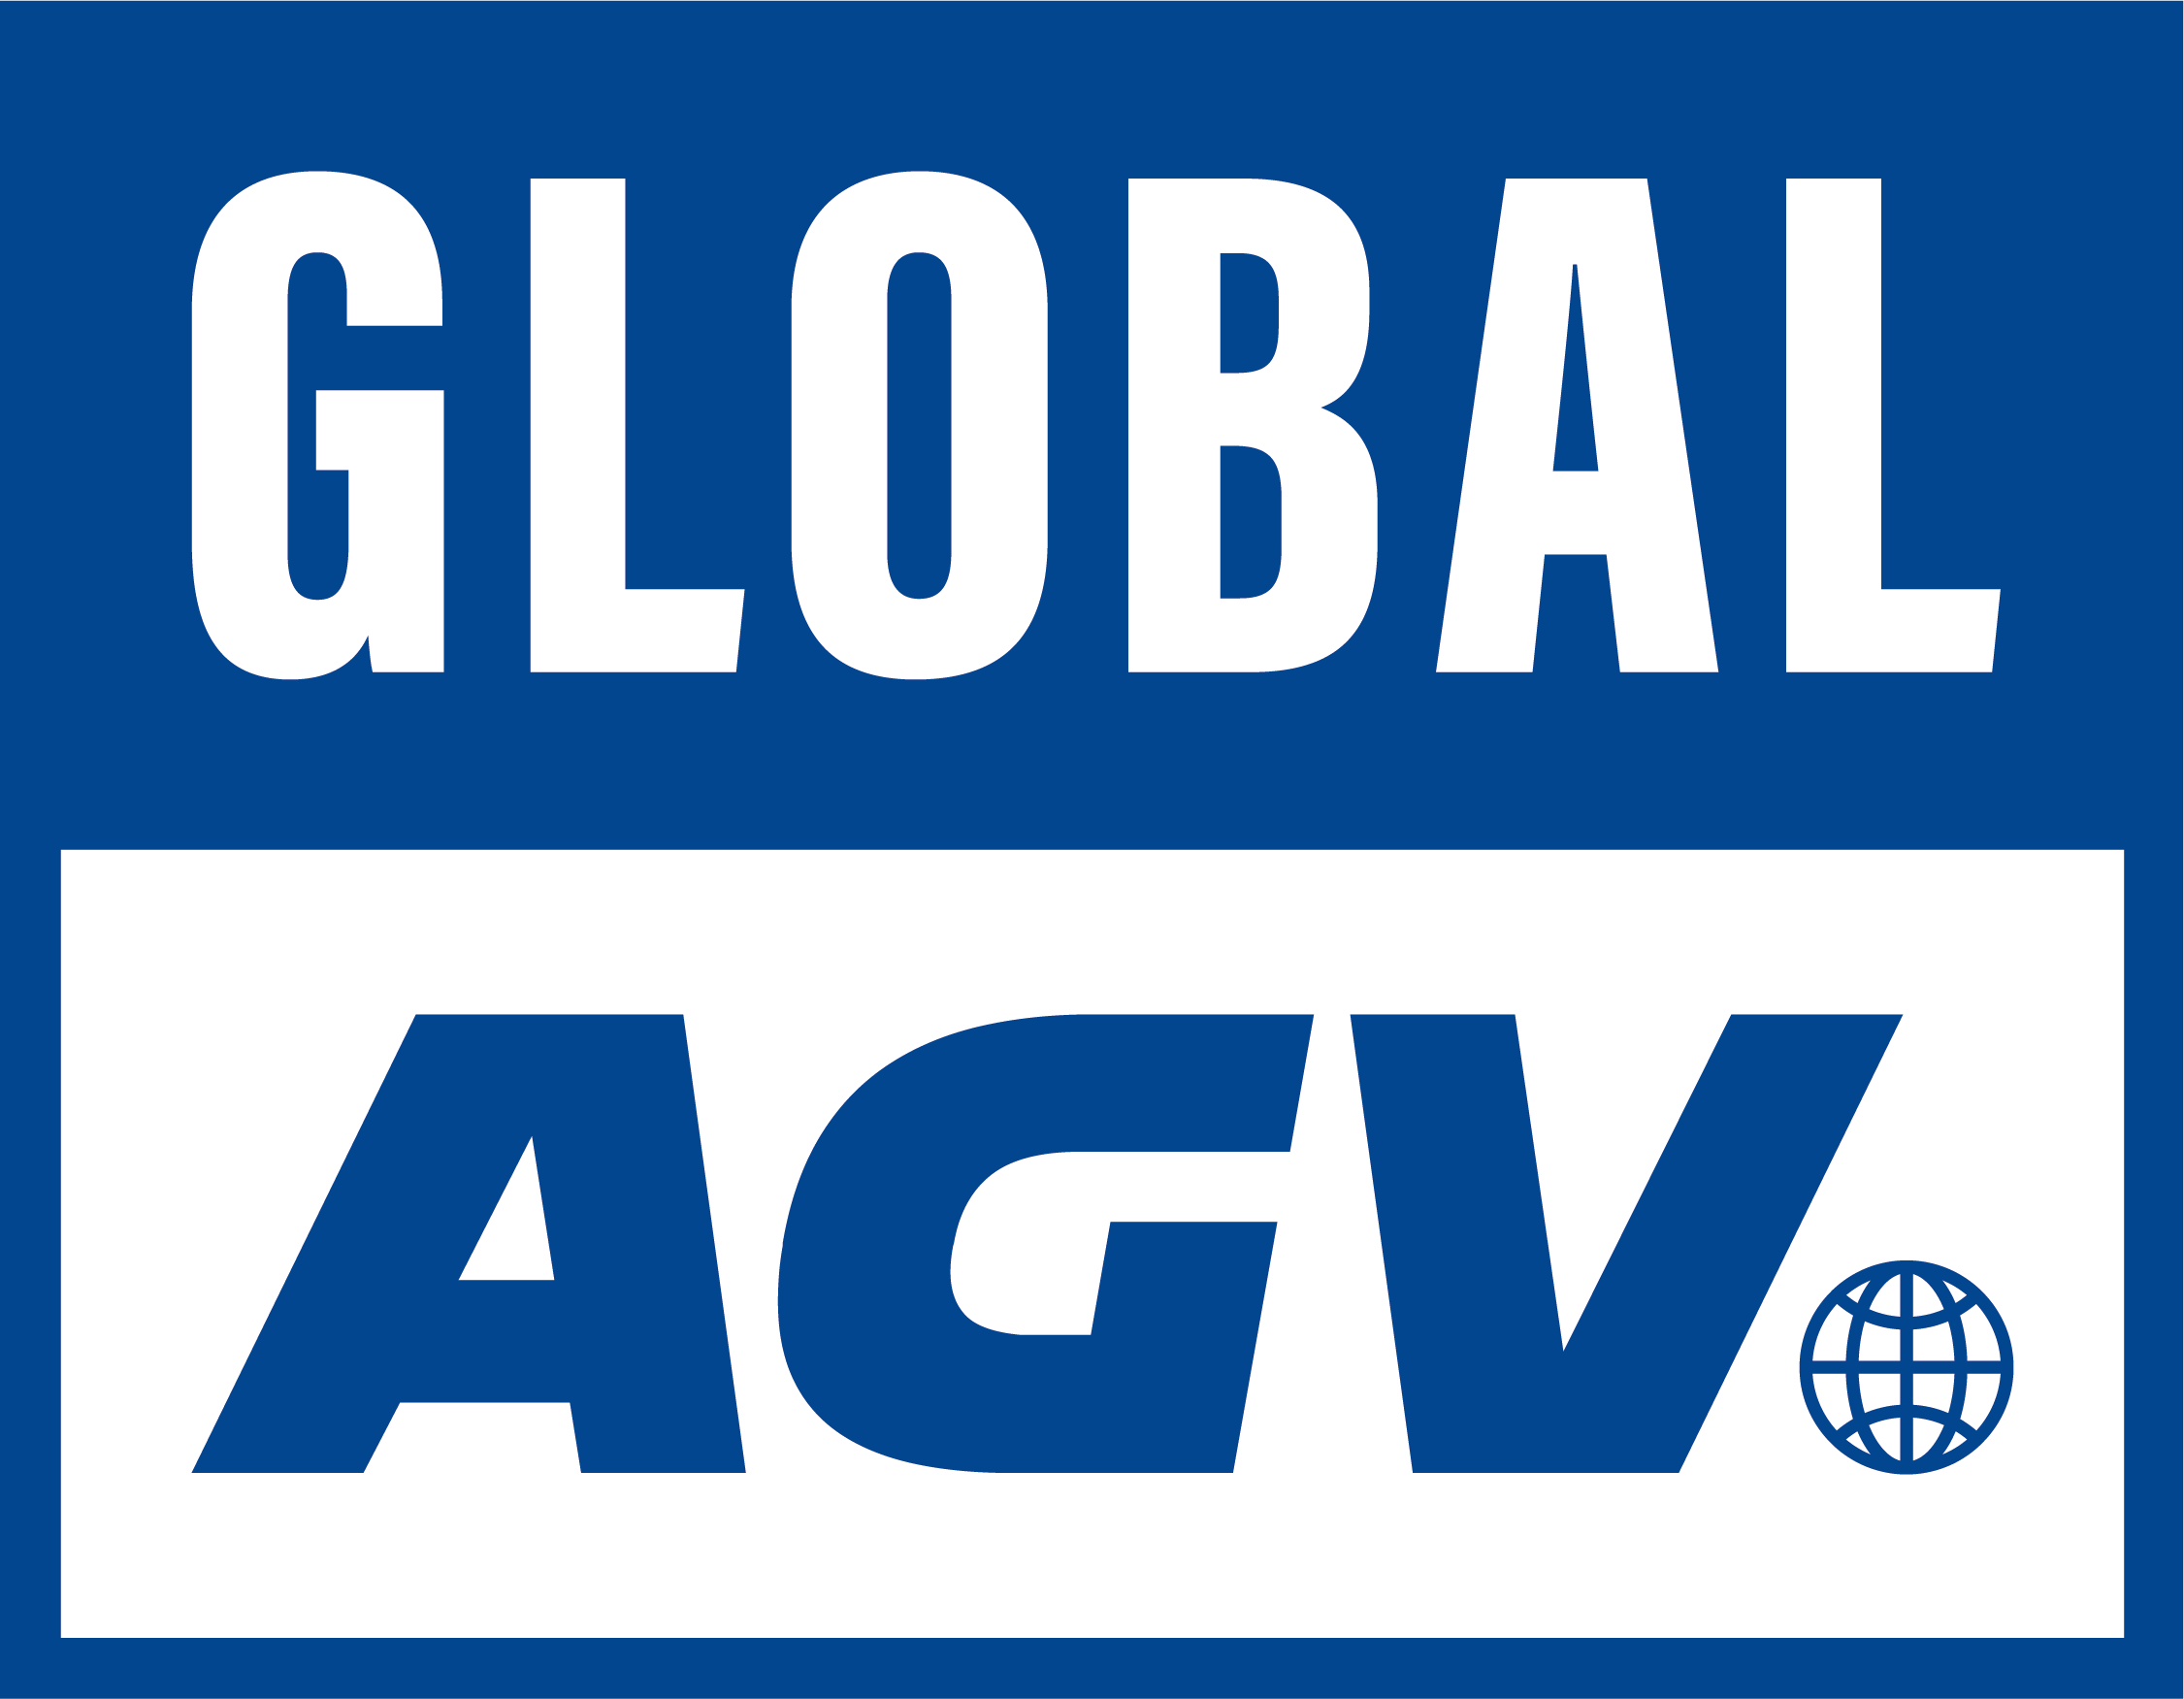 Nic Temple of Global AGV Sees Key Advantages of Autonomous Forklifts During the Pandemics